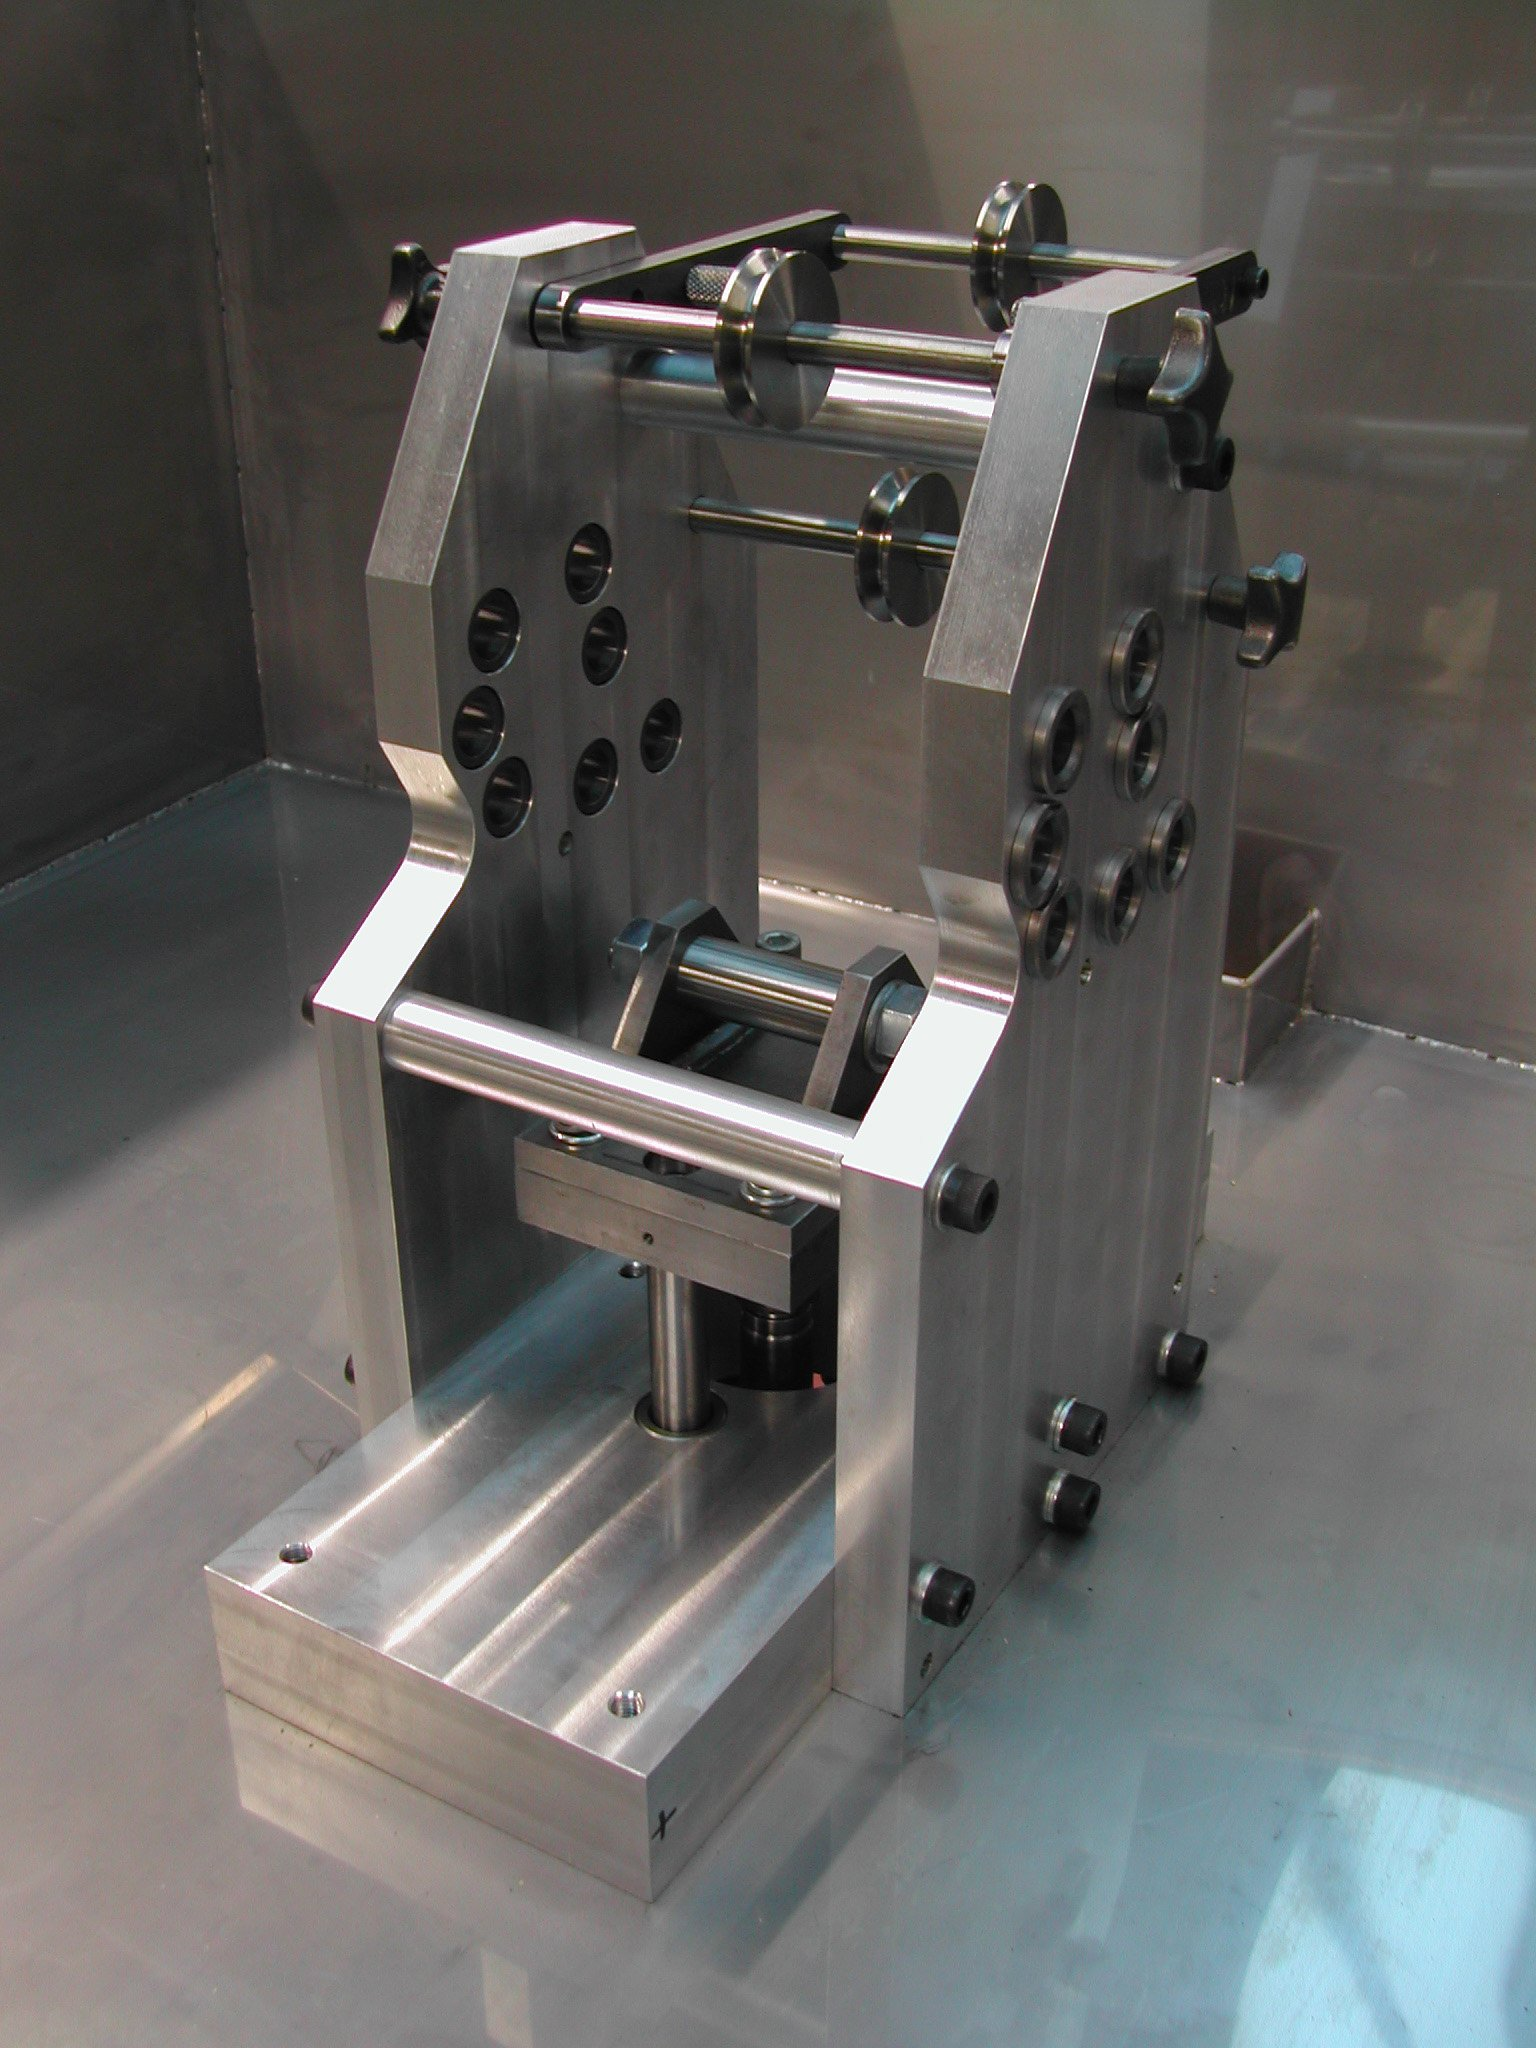 View of Precision cutting